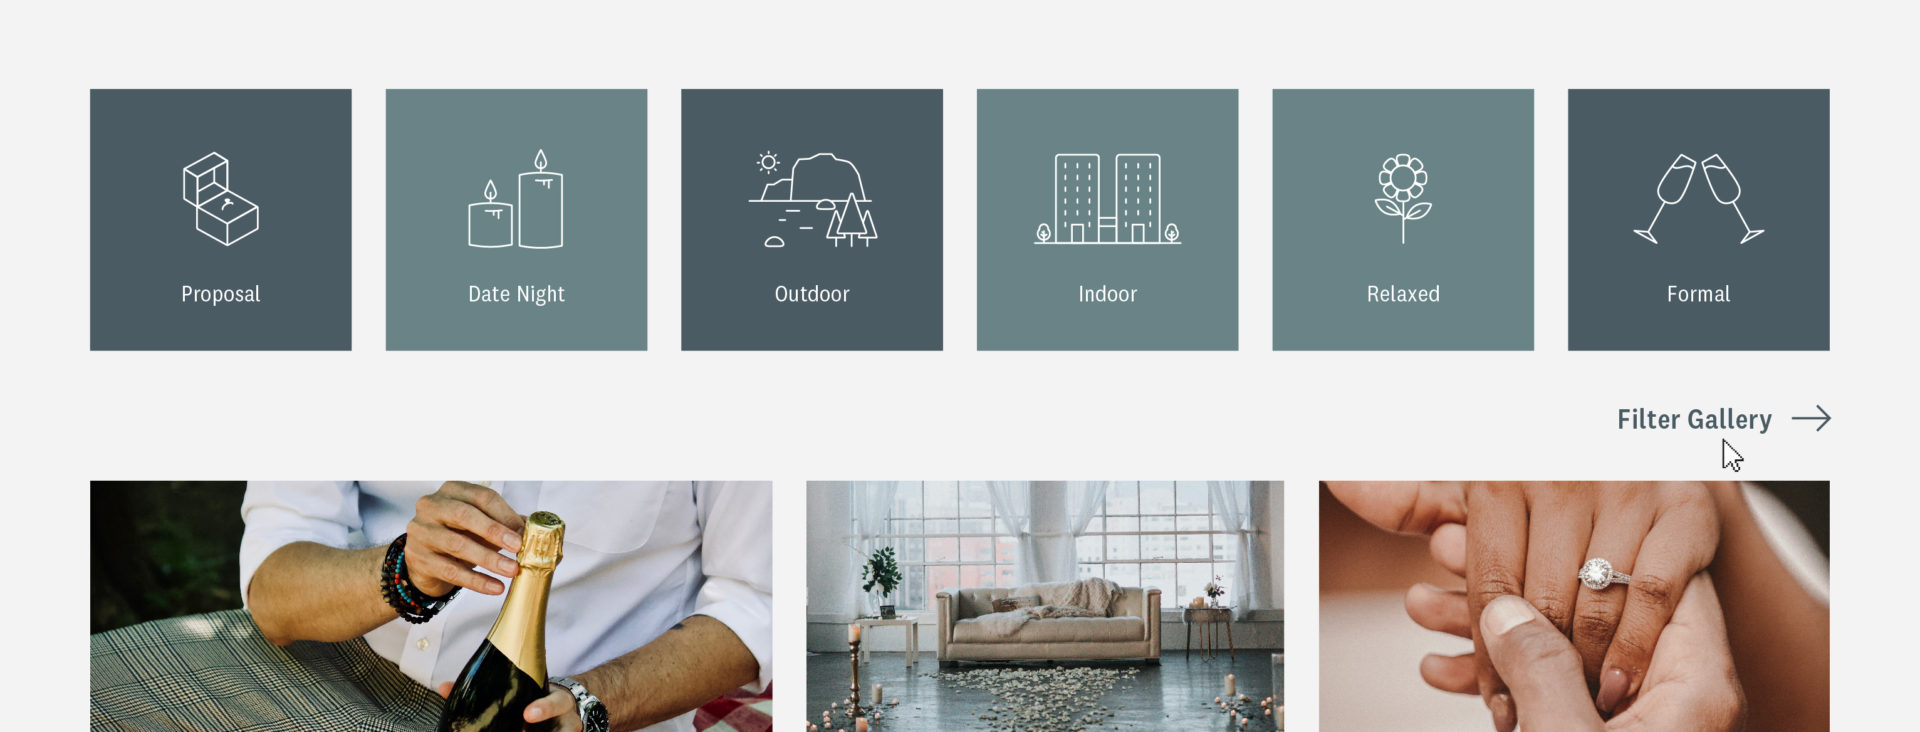 Proposal Planners website icons hands ring champagne